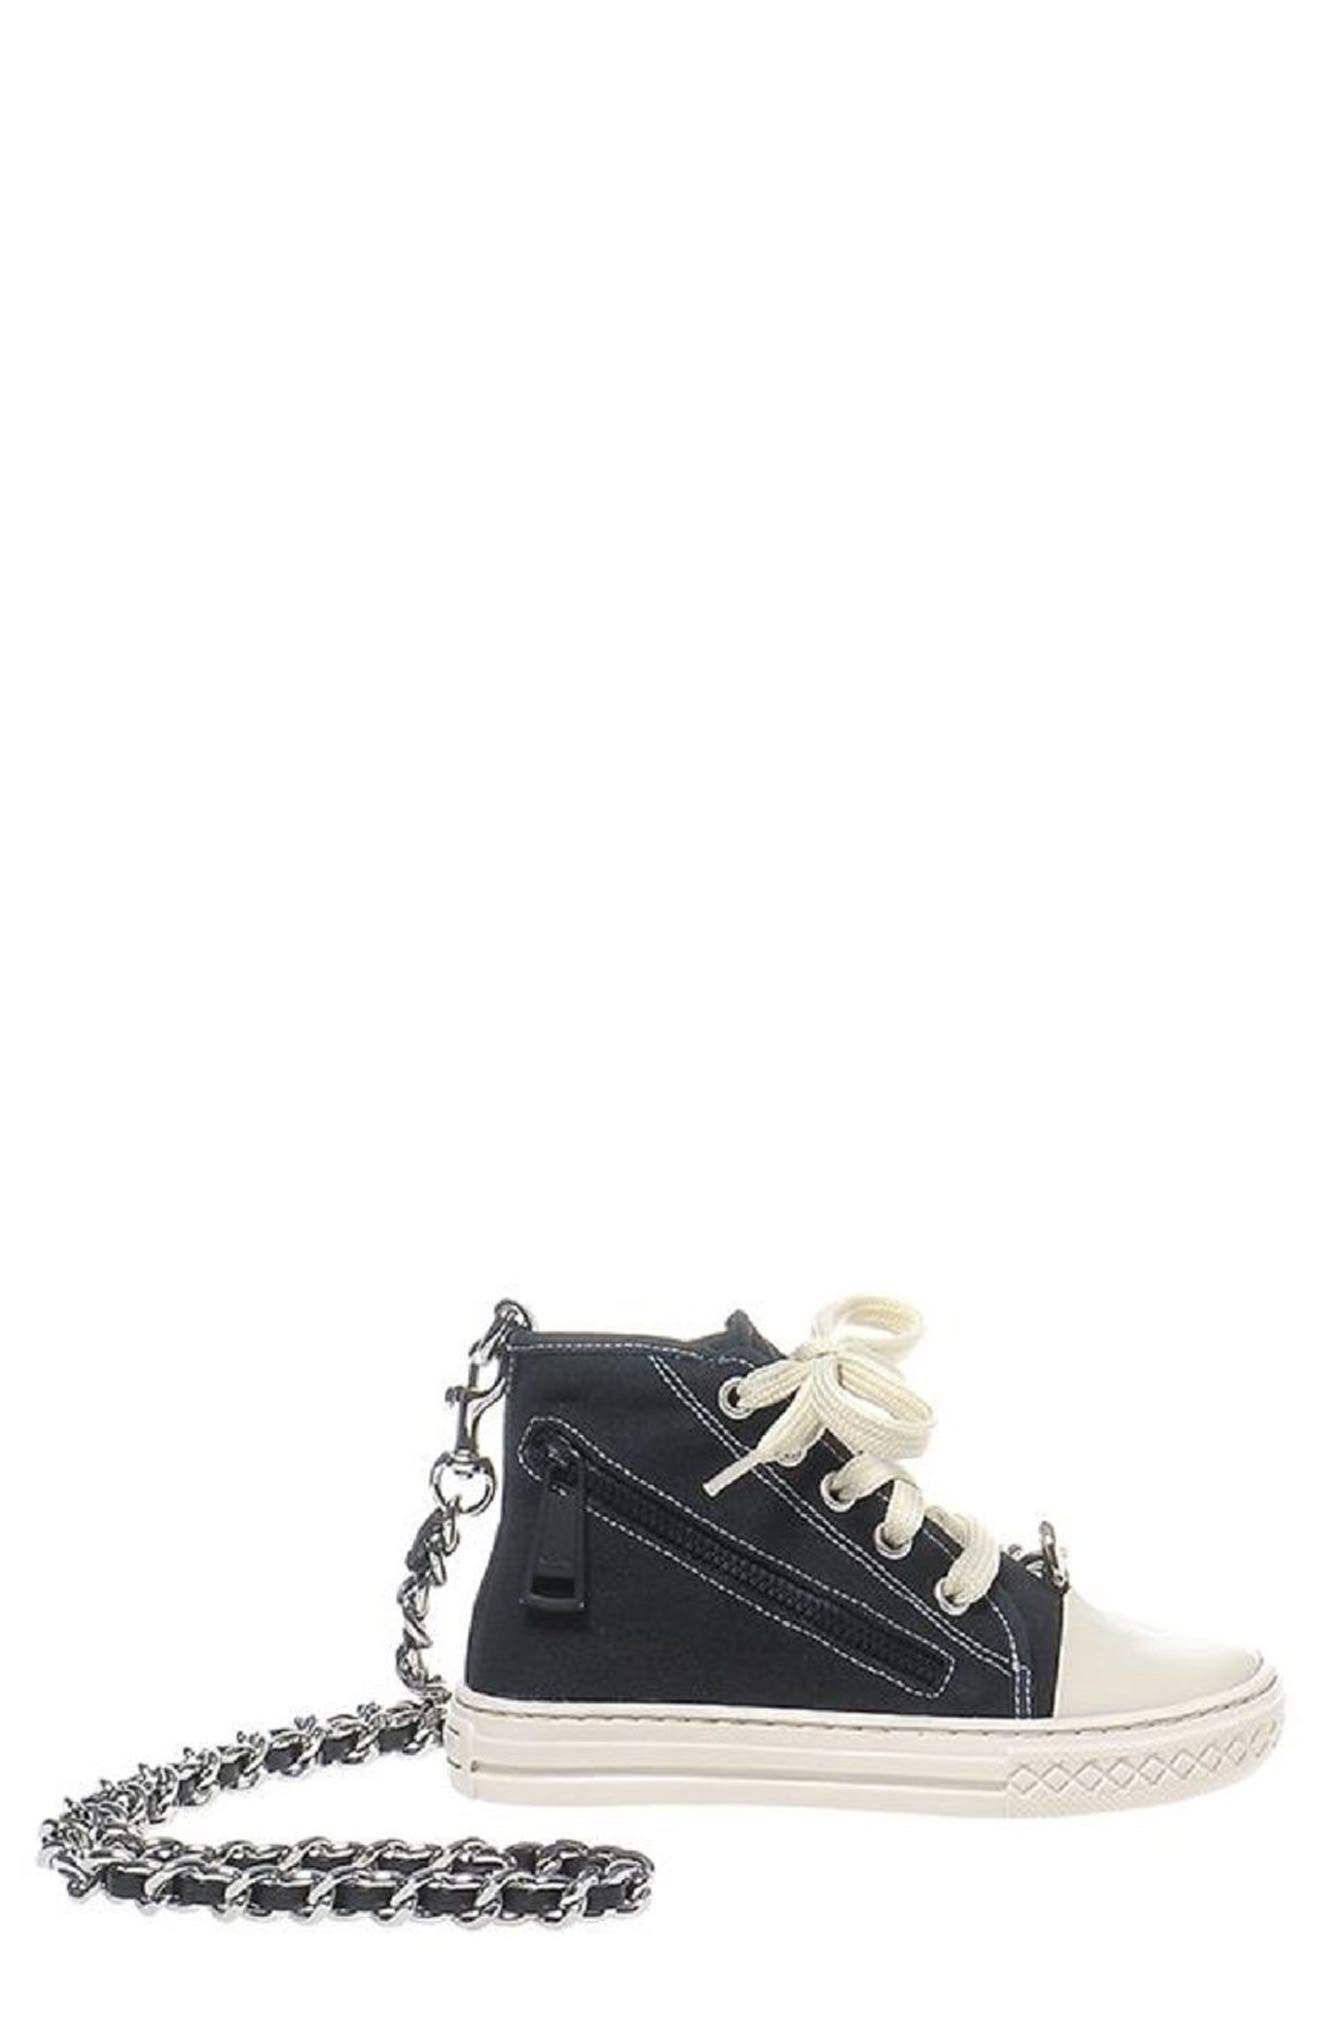 Main Image - Moschino Sneaker Shoulder Bag